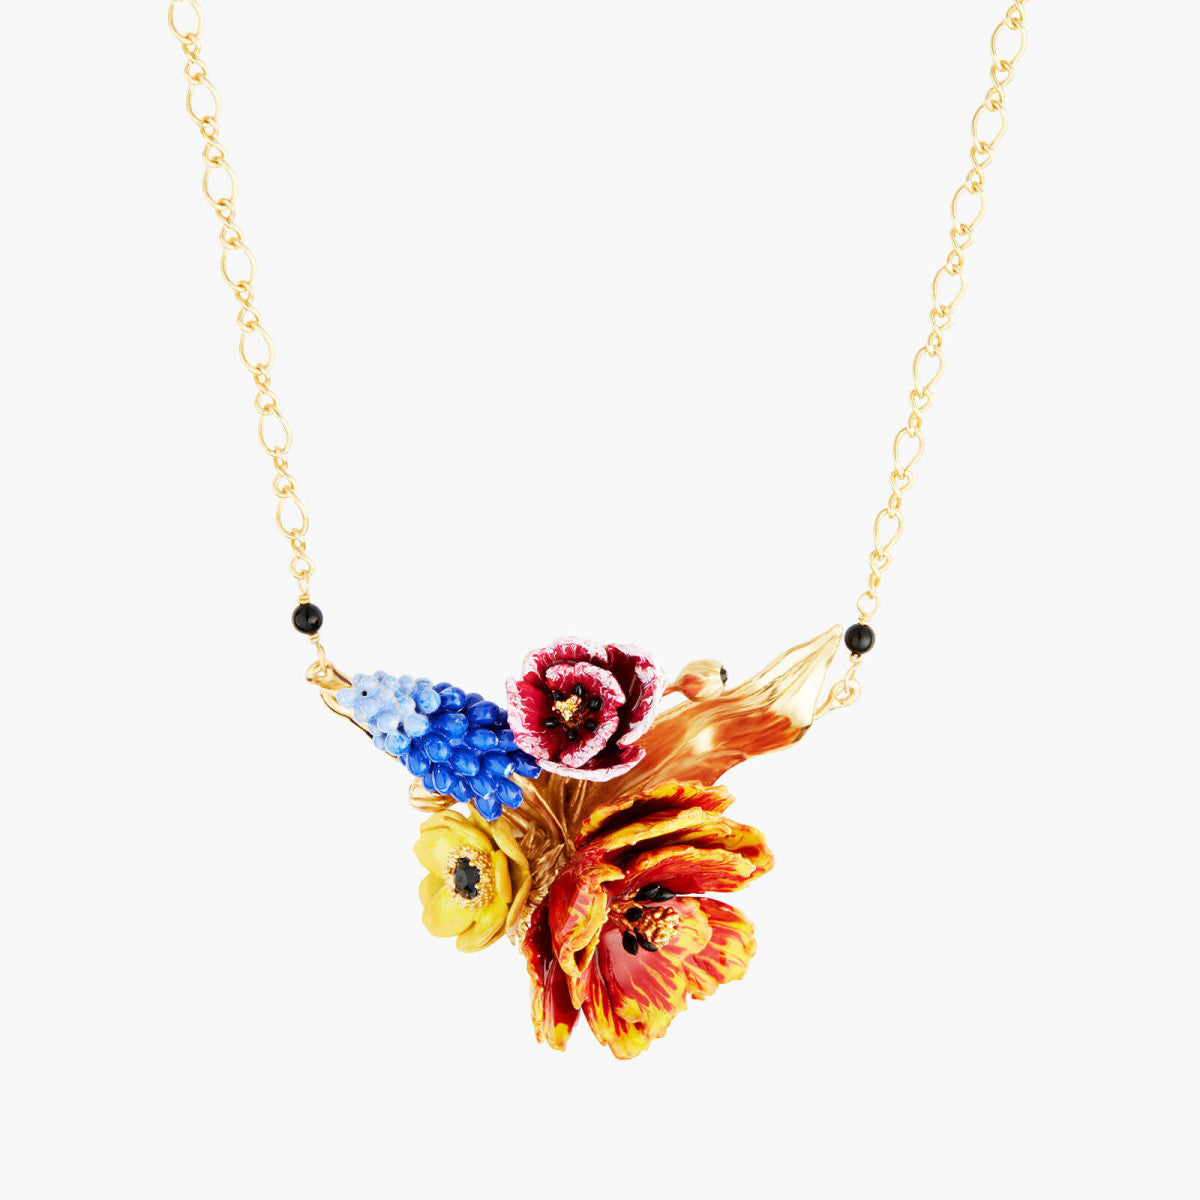 Winter Blooming Bouquet Collar Necklace